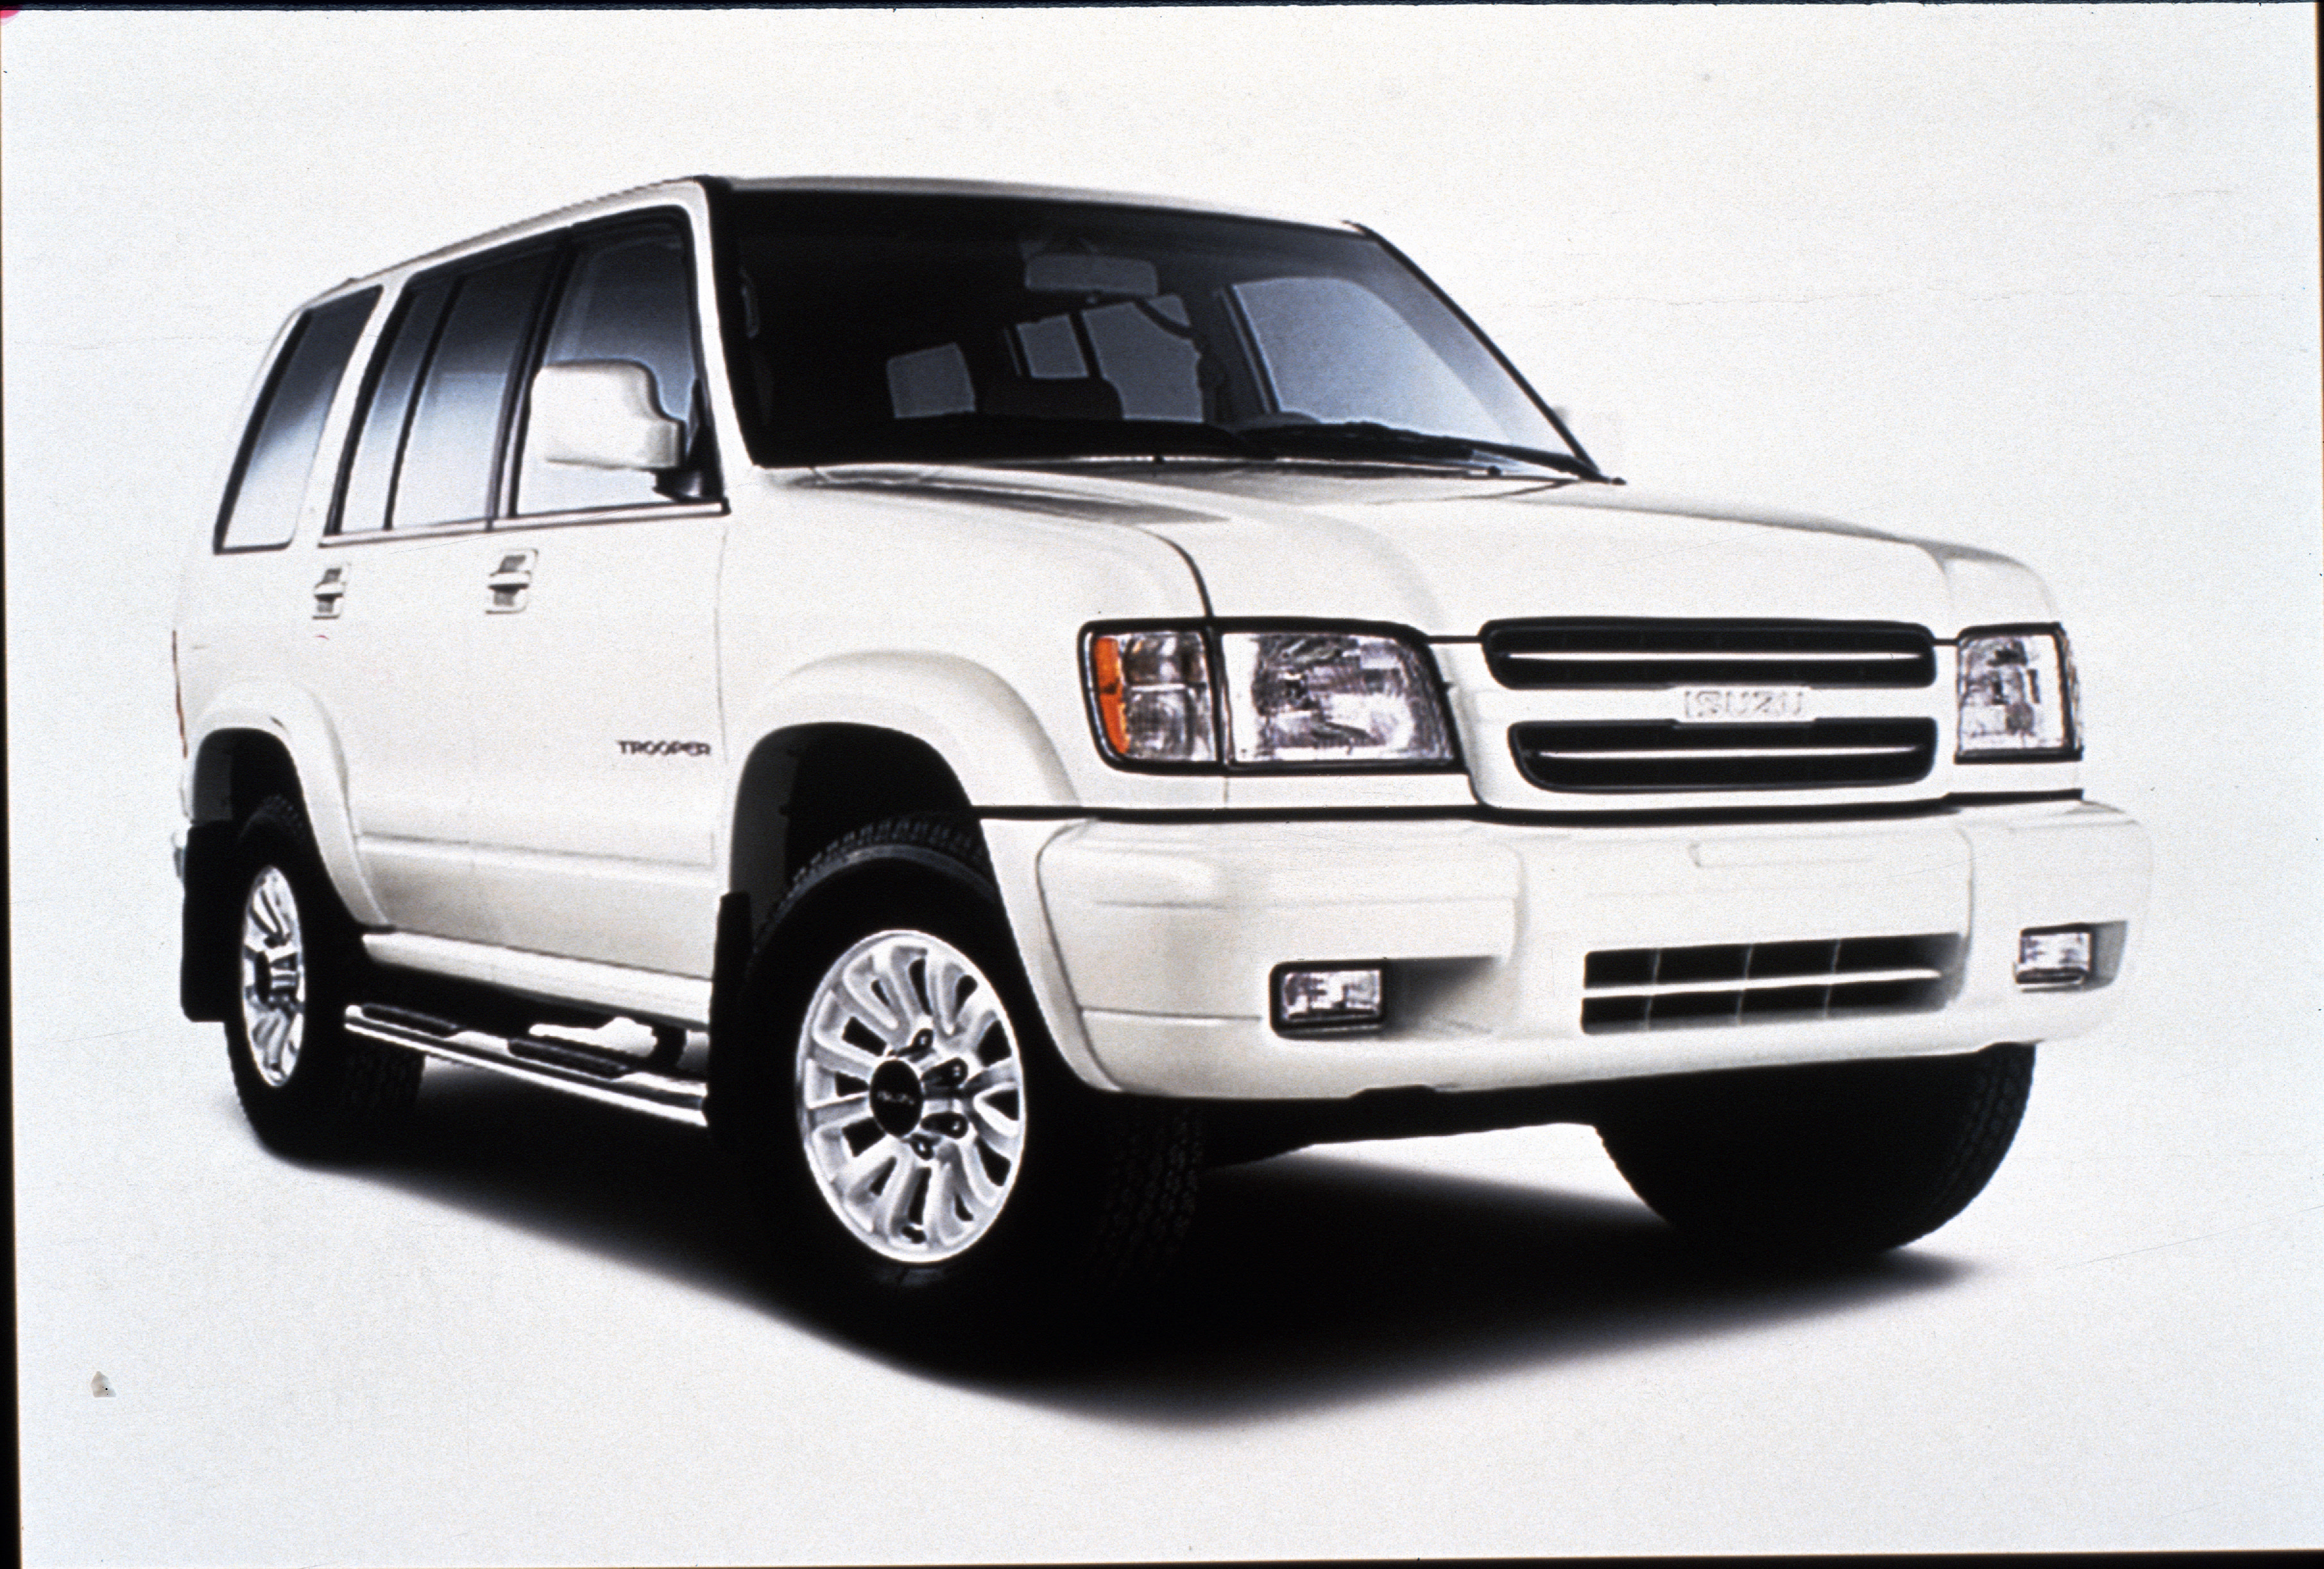 The 2001 isuzu